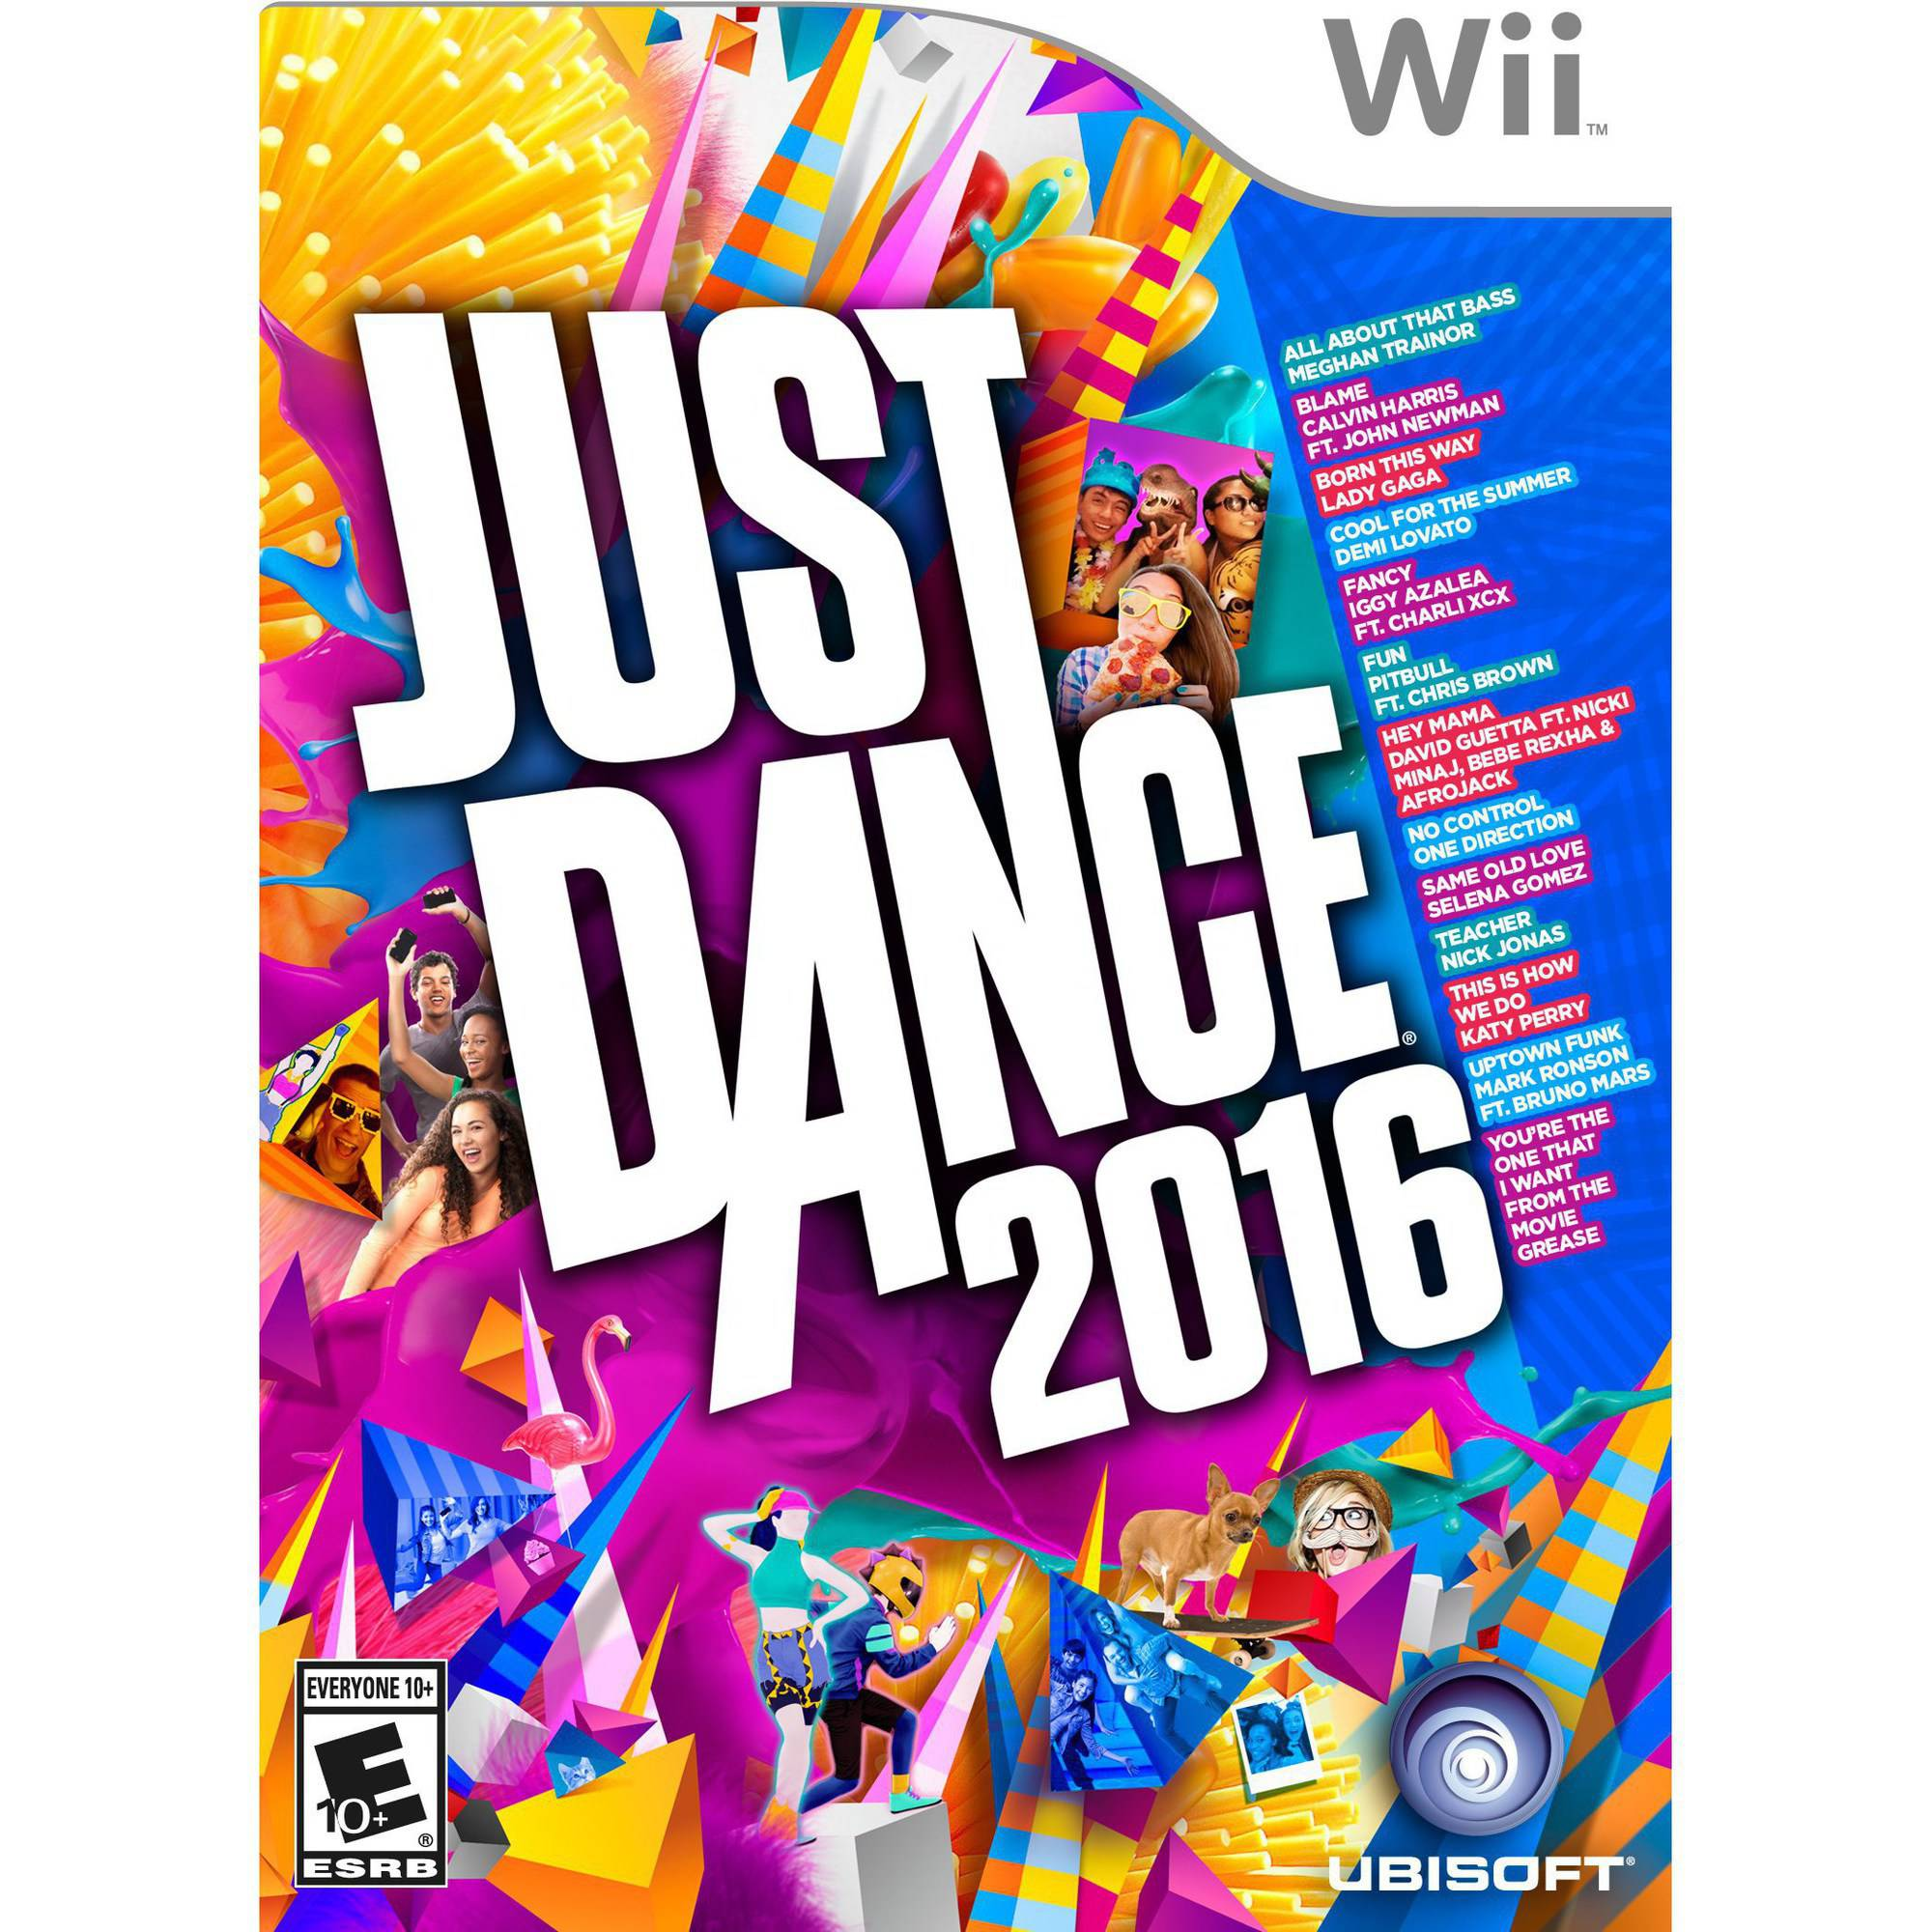 Just Dance 2016, Ubisoft, Nintendo Wii, 887256013998